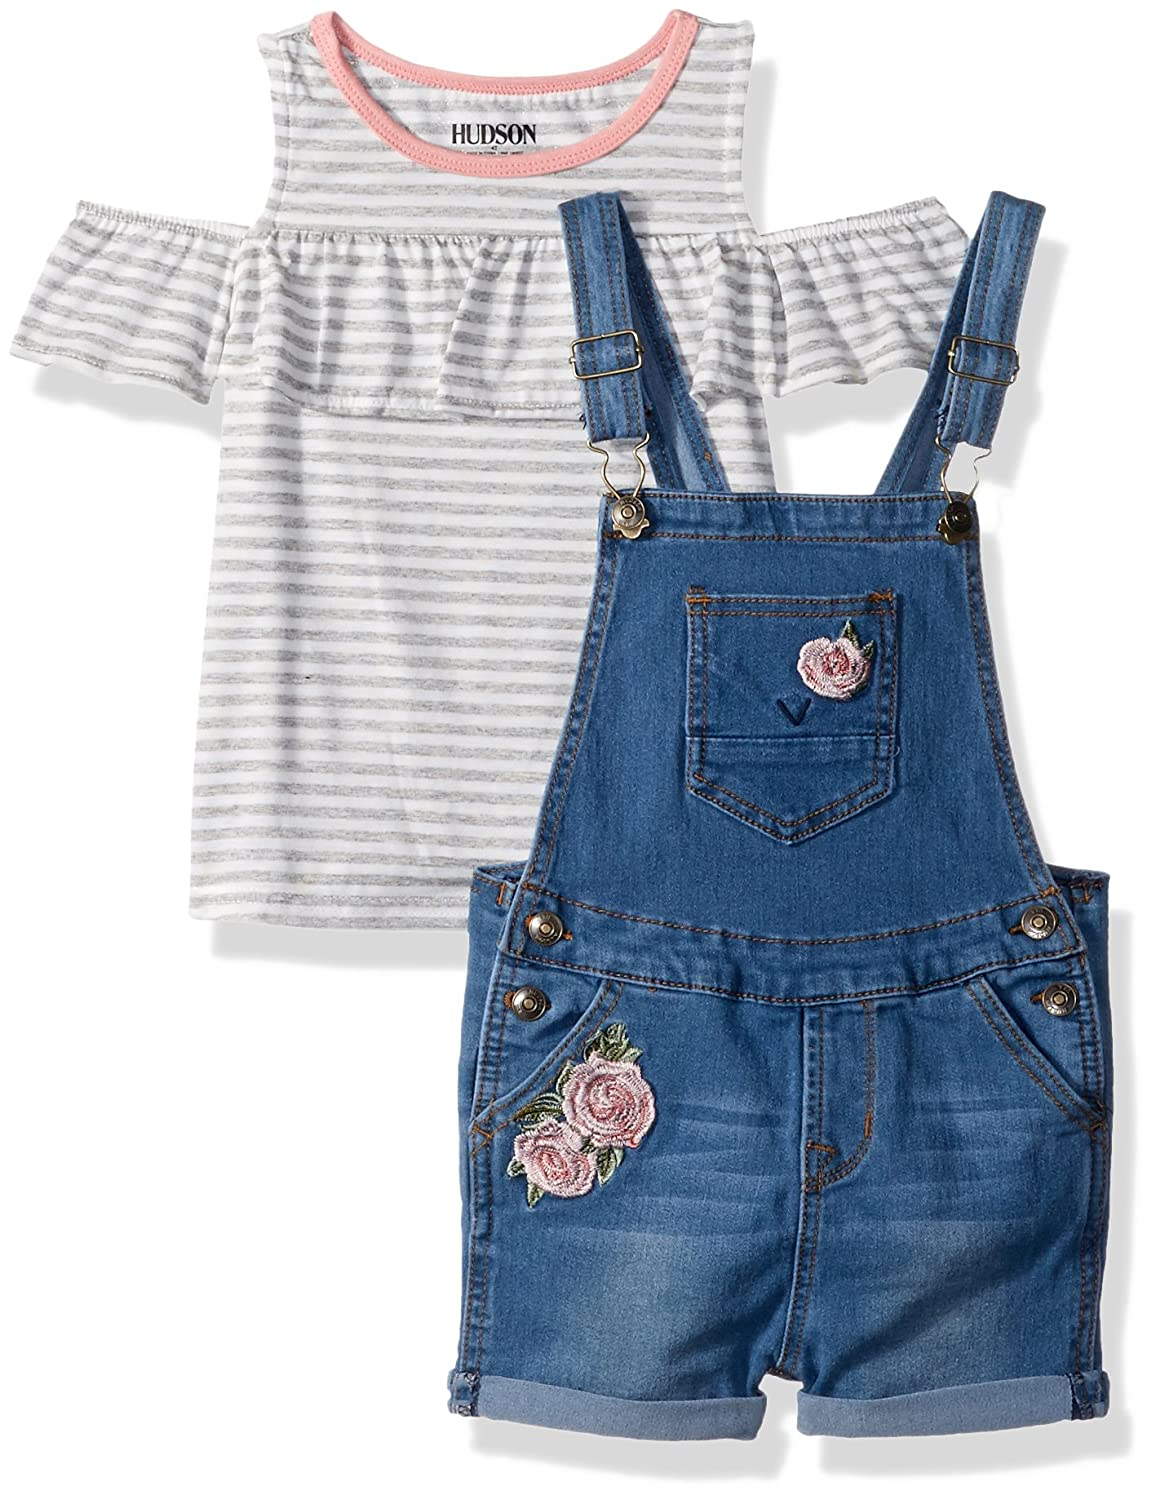 cf8173ed5 Amazon.com: HUDSON Girls' Toddler 2PC Shortall Set, Whatever wash 2T:  Clothing